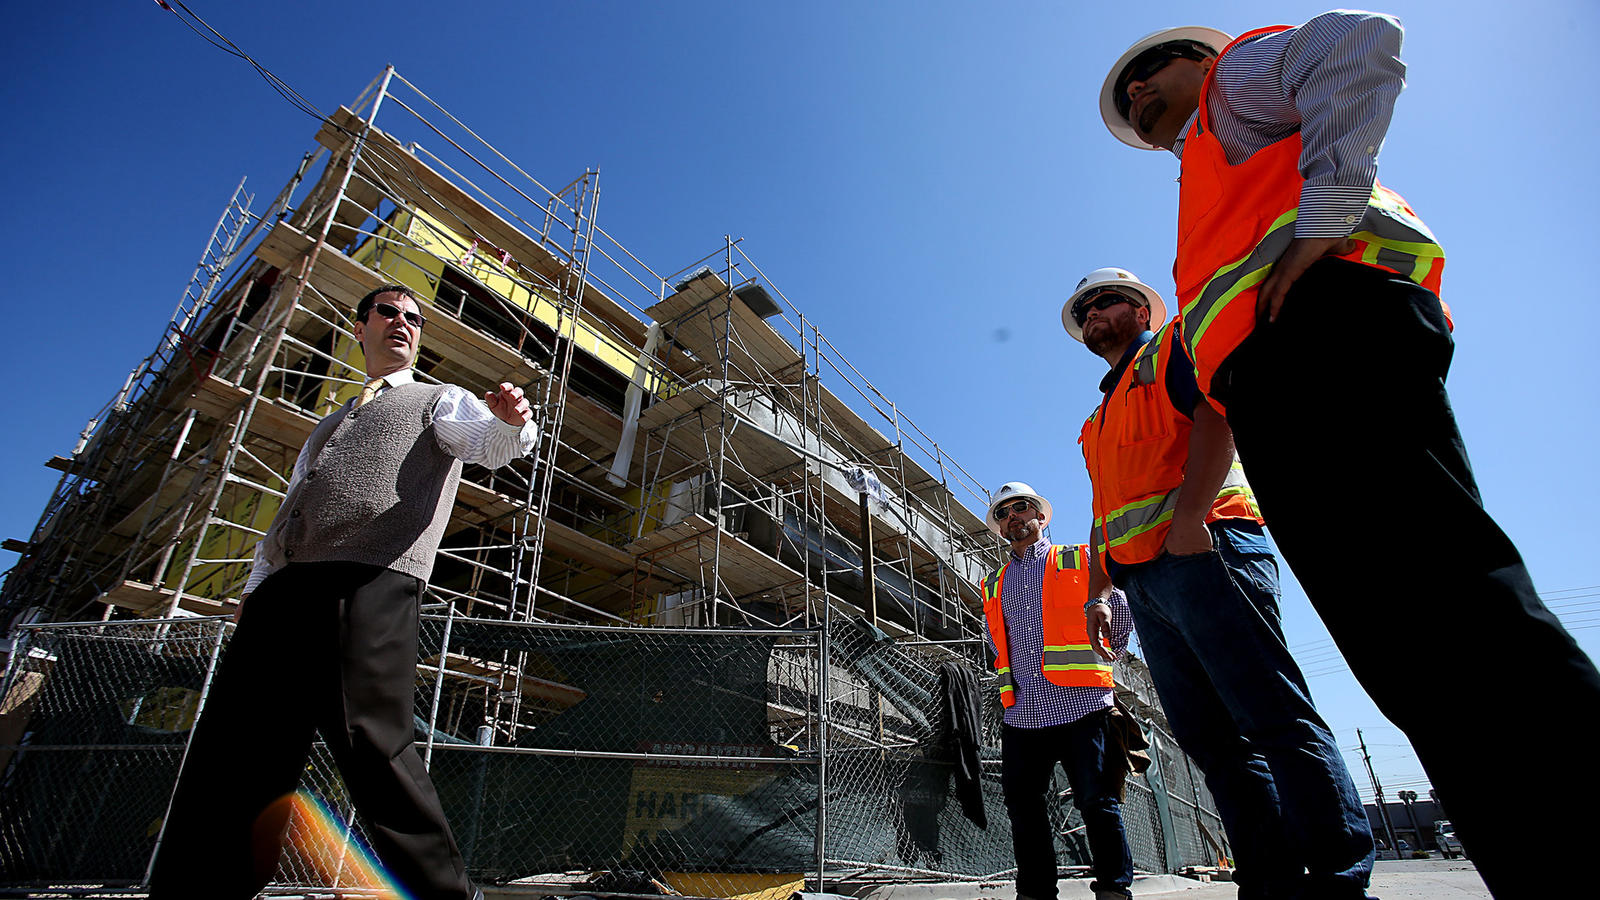 Hawthorne High School under construction in 2014. (Los Angeles Times)